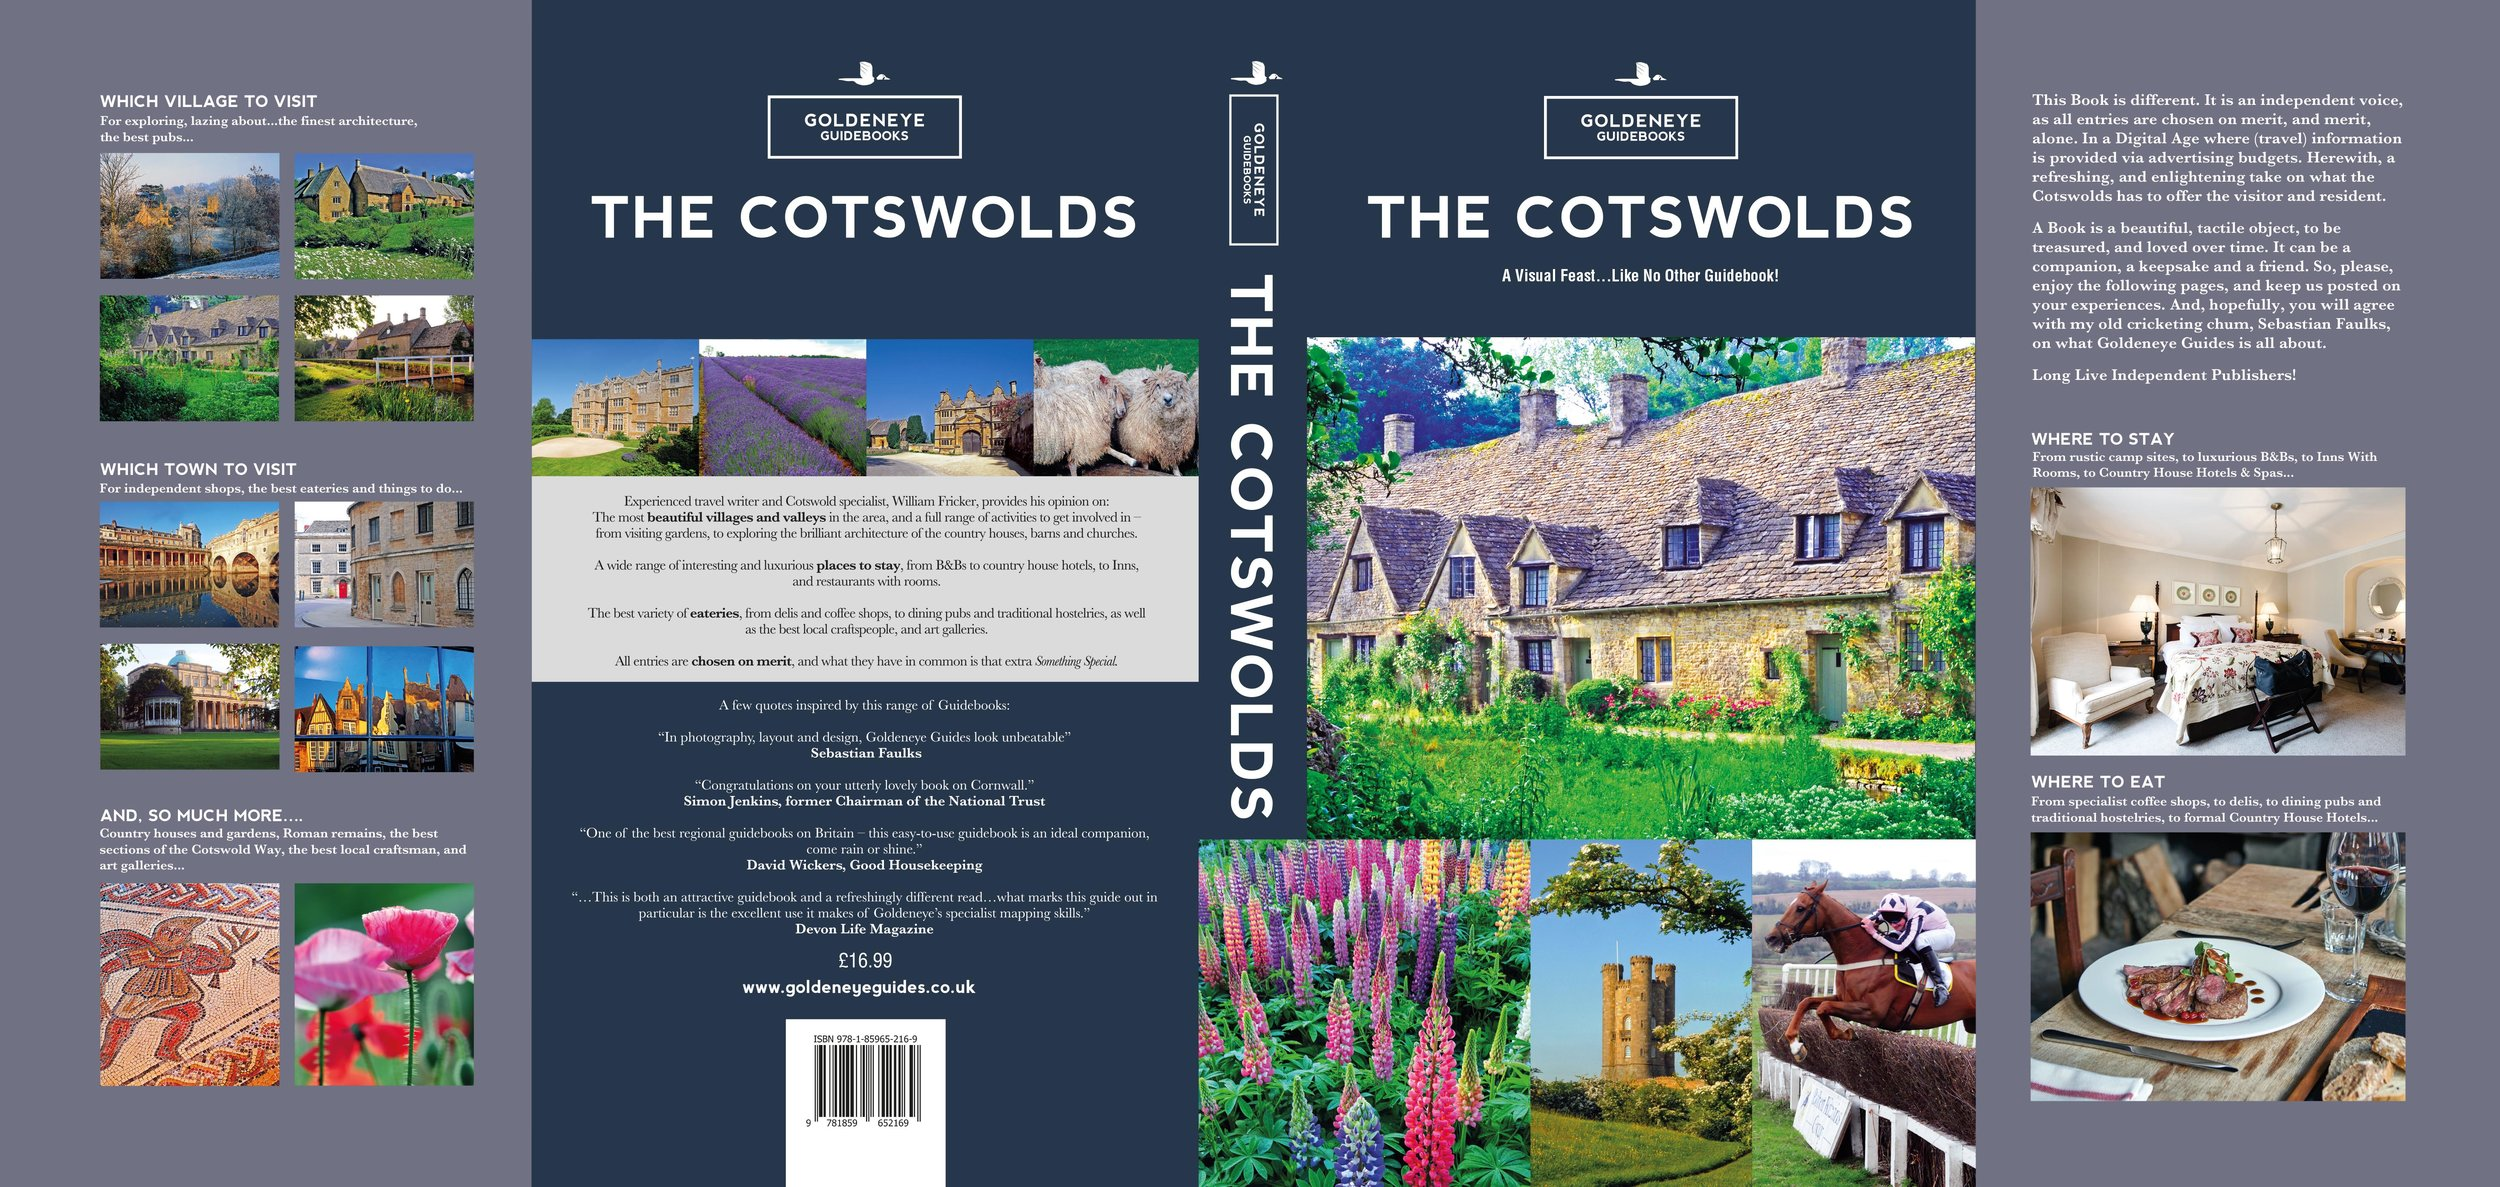 Cotswold Guidebook 2017.jpg